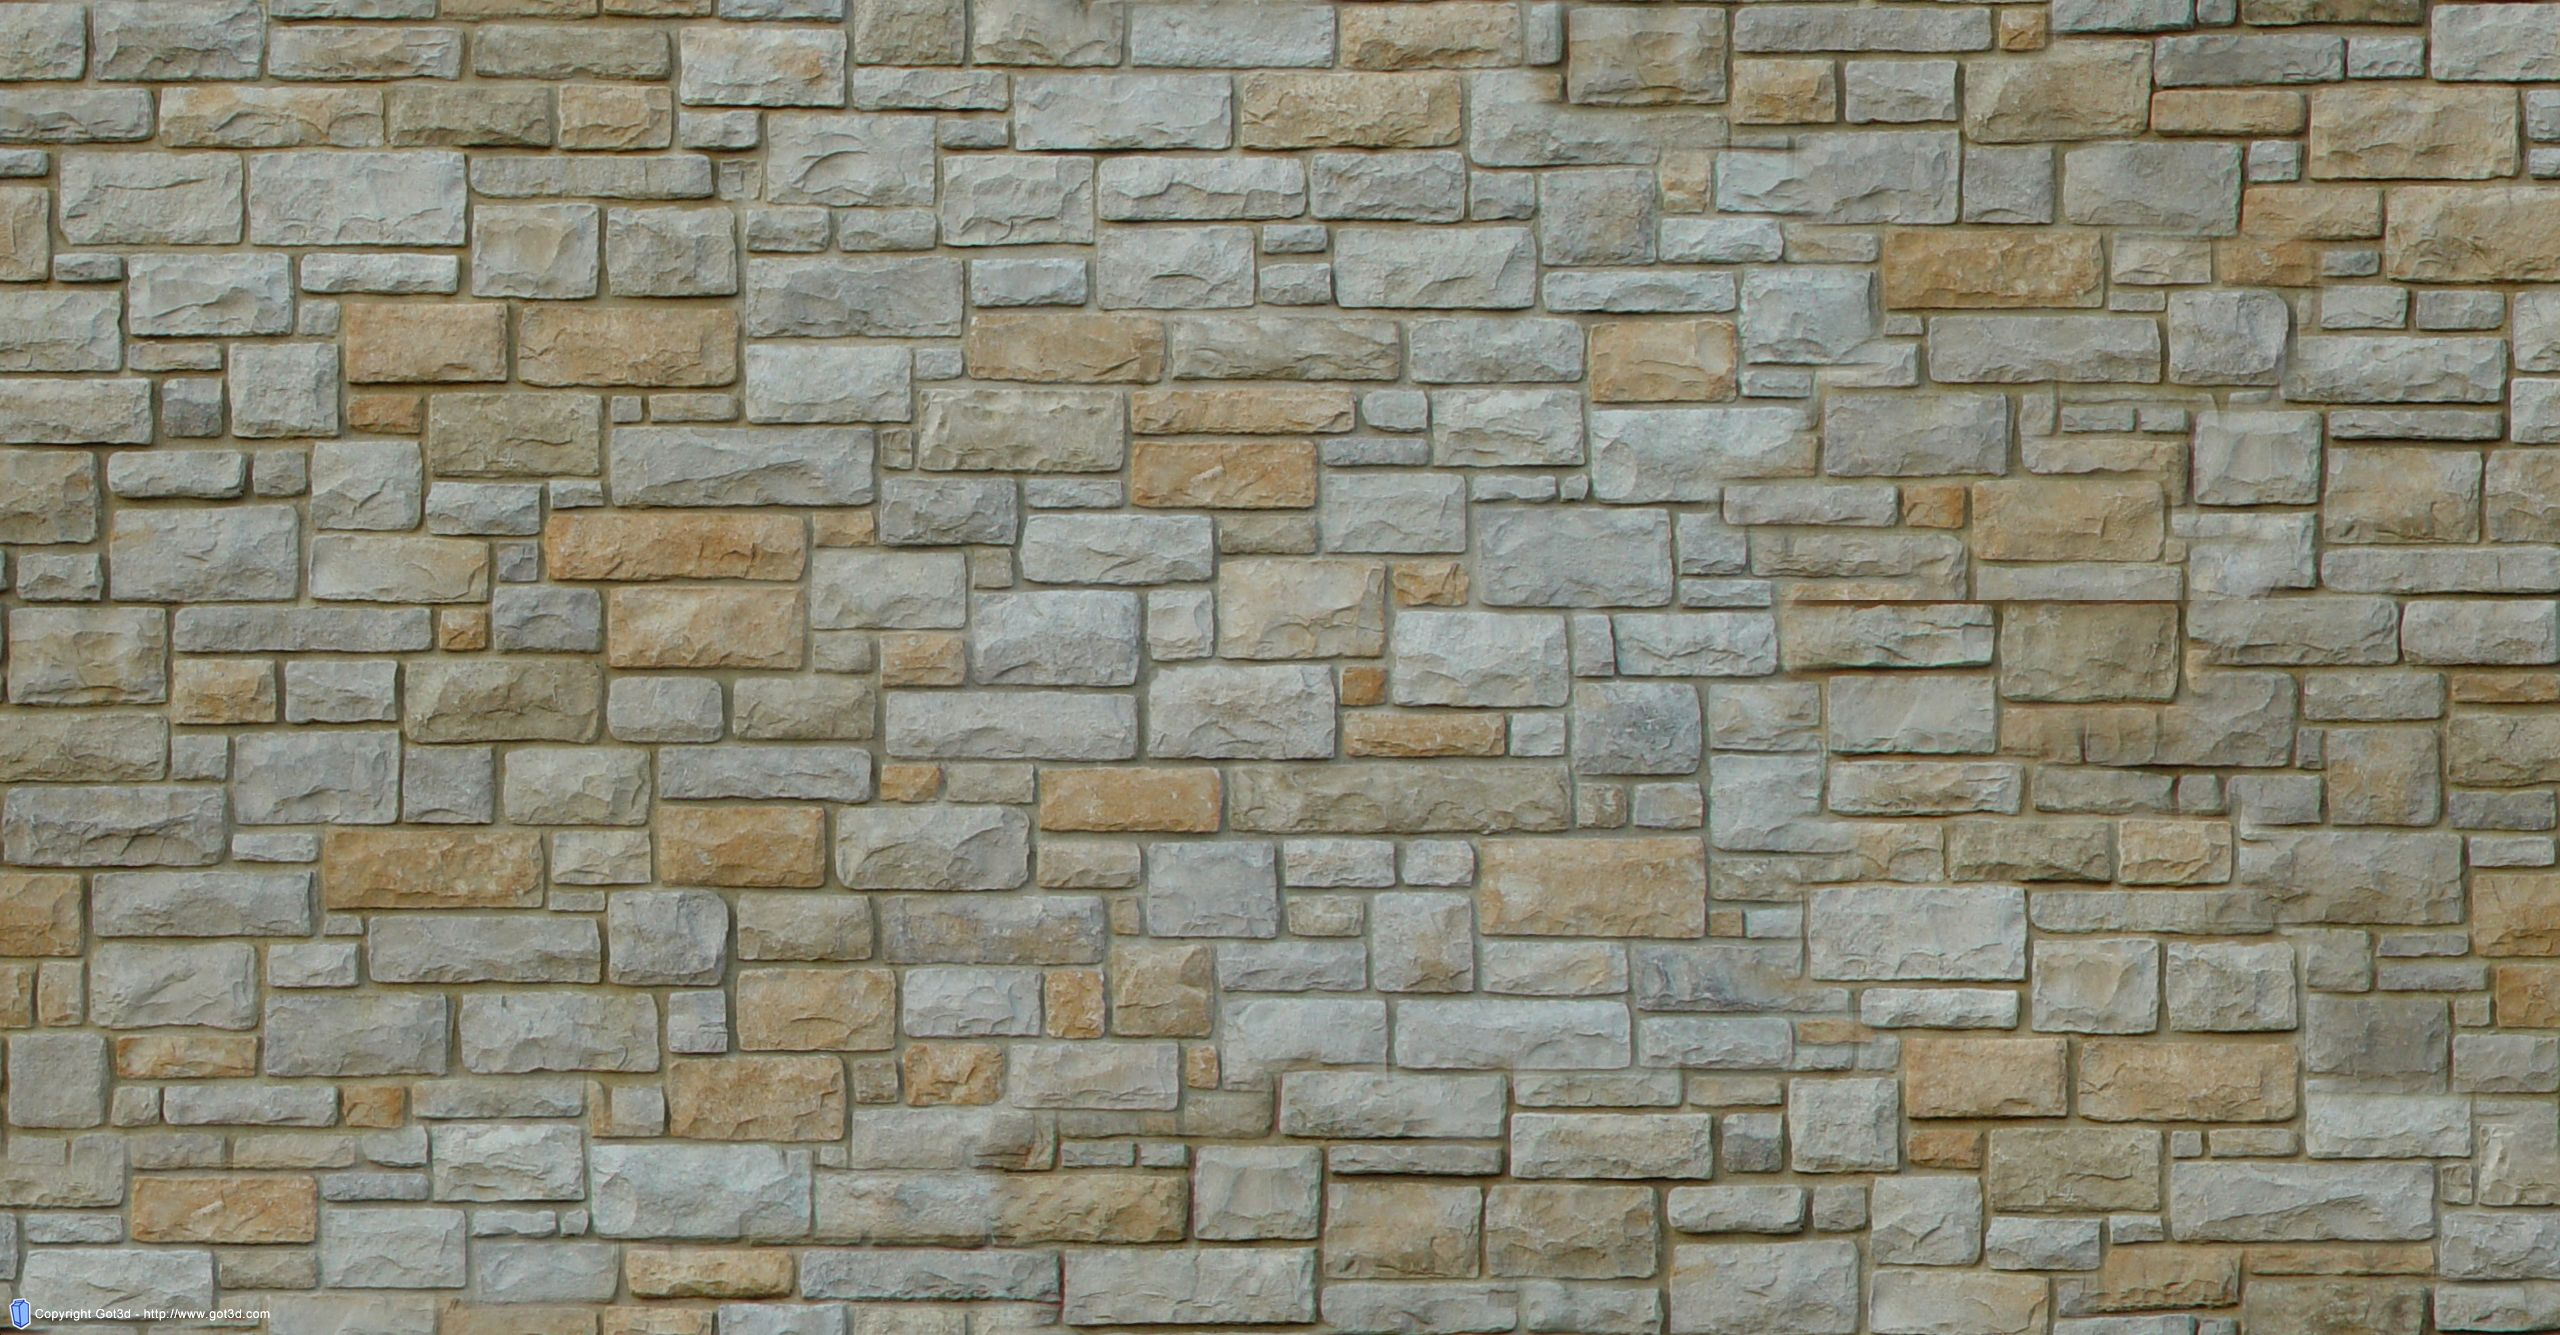 free-stone-wall-texture-002 | Texture & Patterns: Naturals ...